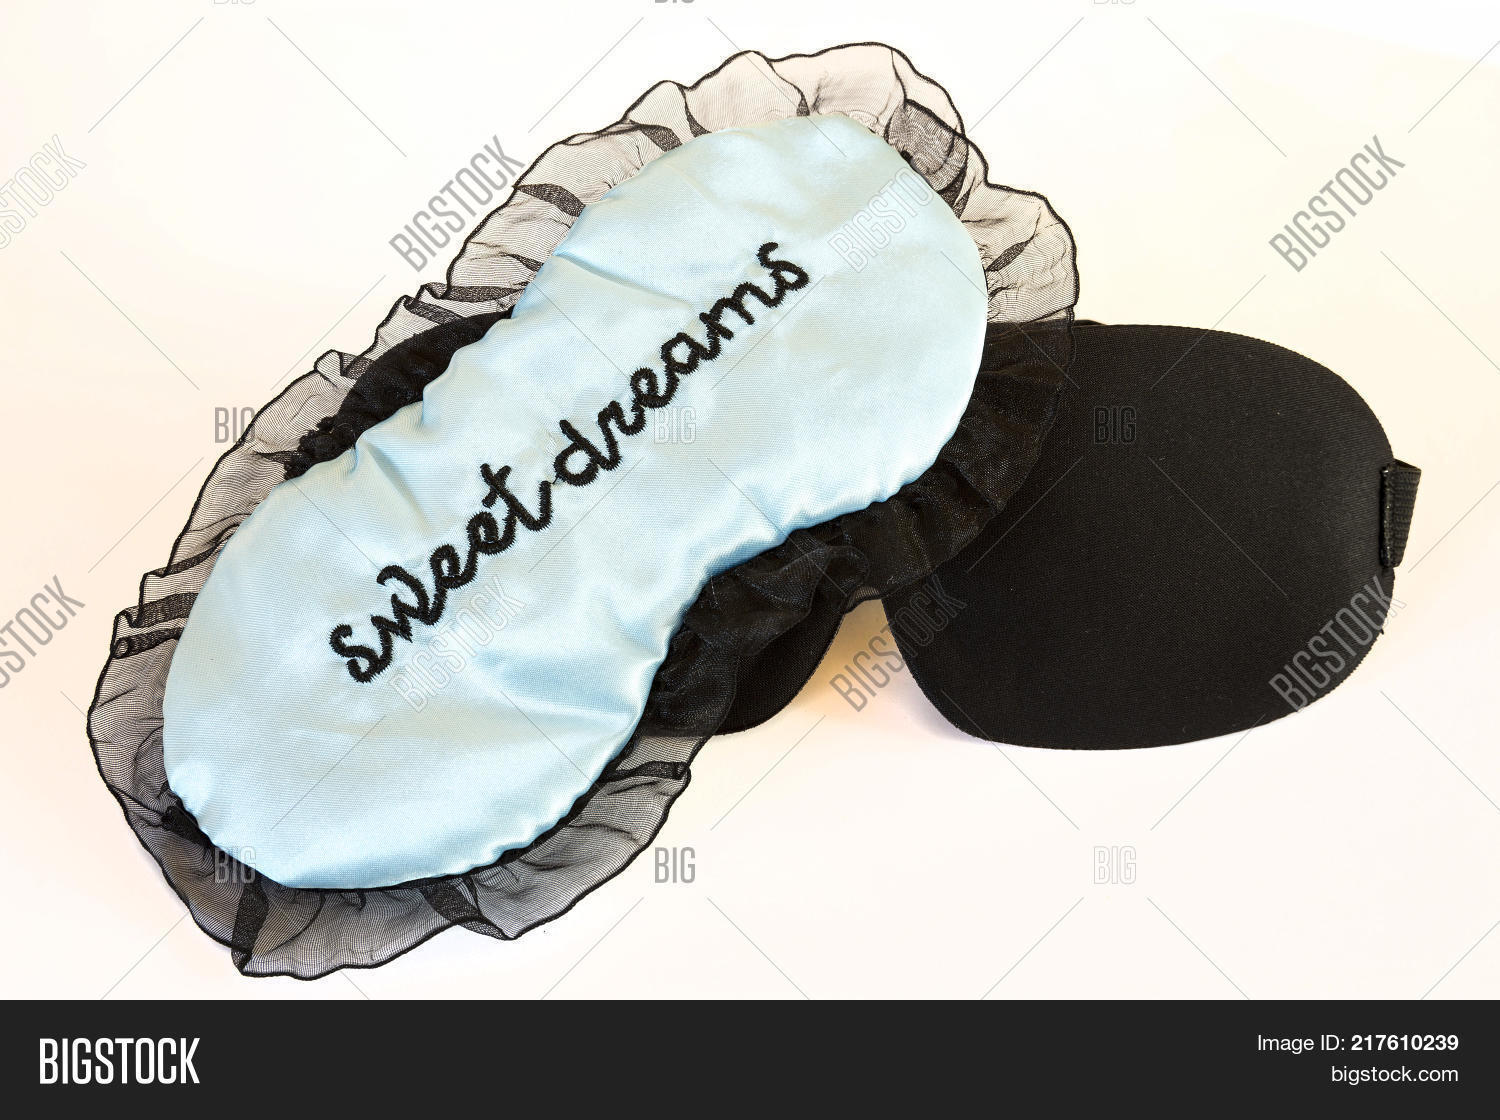 0cd1c9039ed Sleeping masks isolated on a white background. Sweet dreams blue and black.  Studio shot